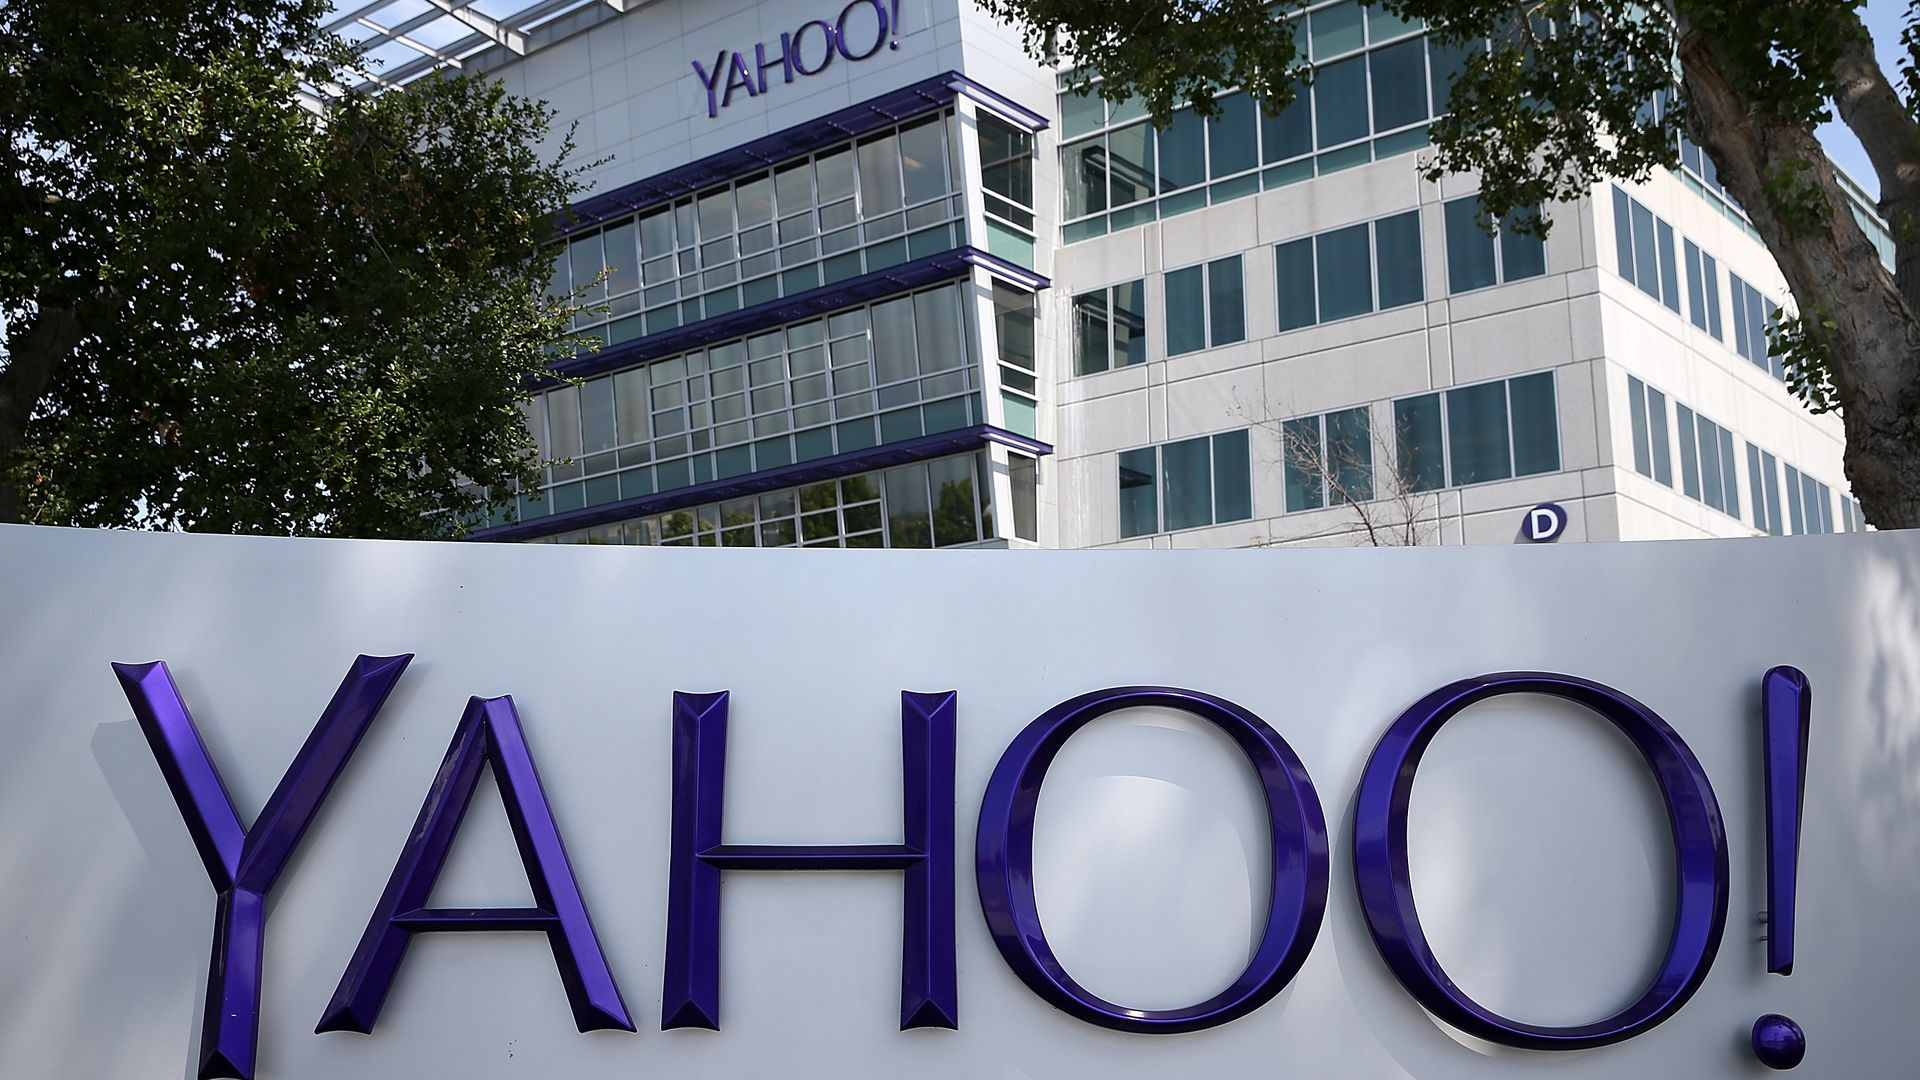 Yahoo headquarters sign.